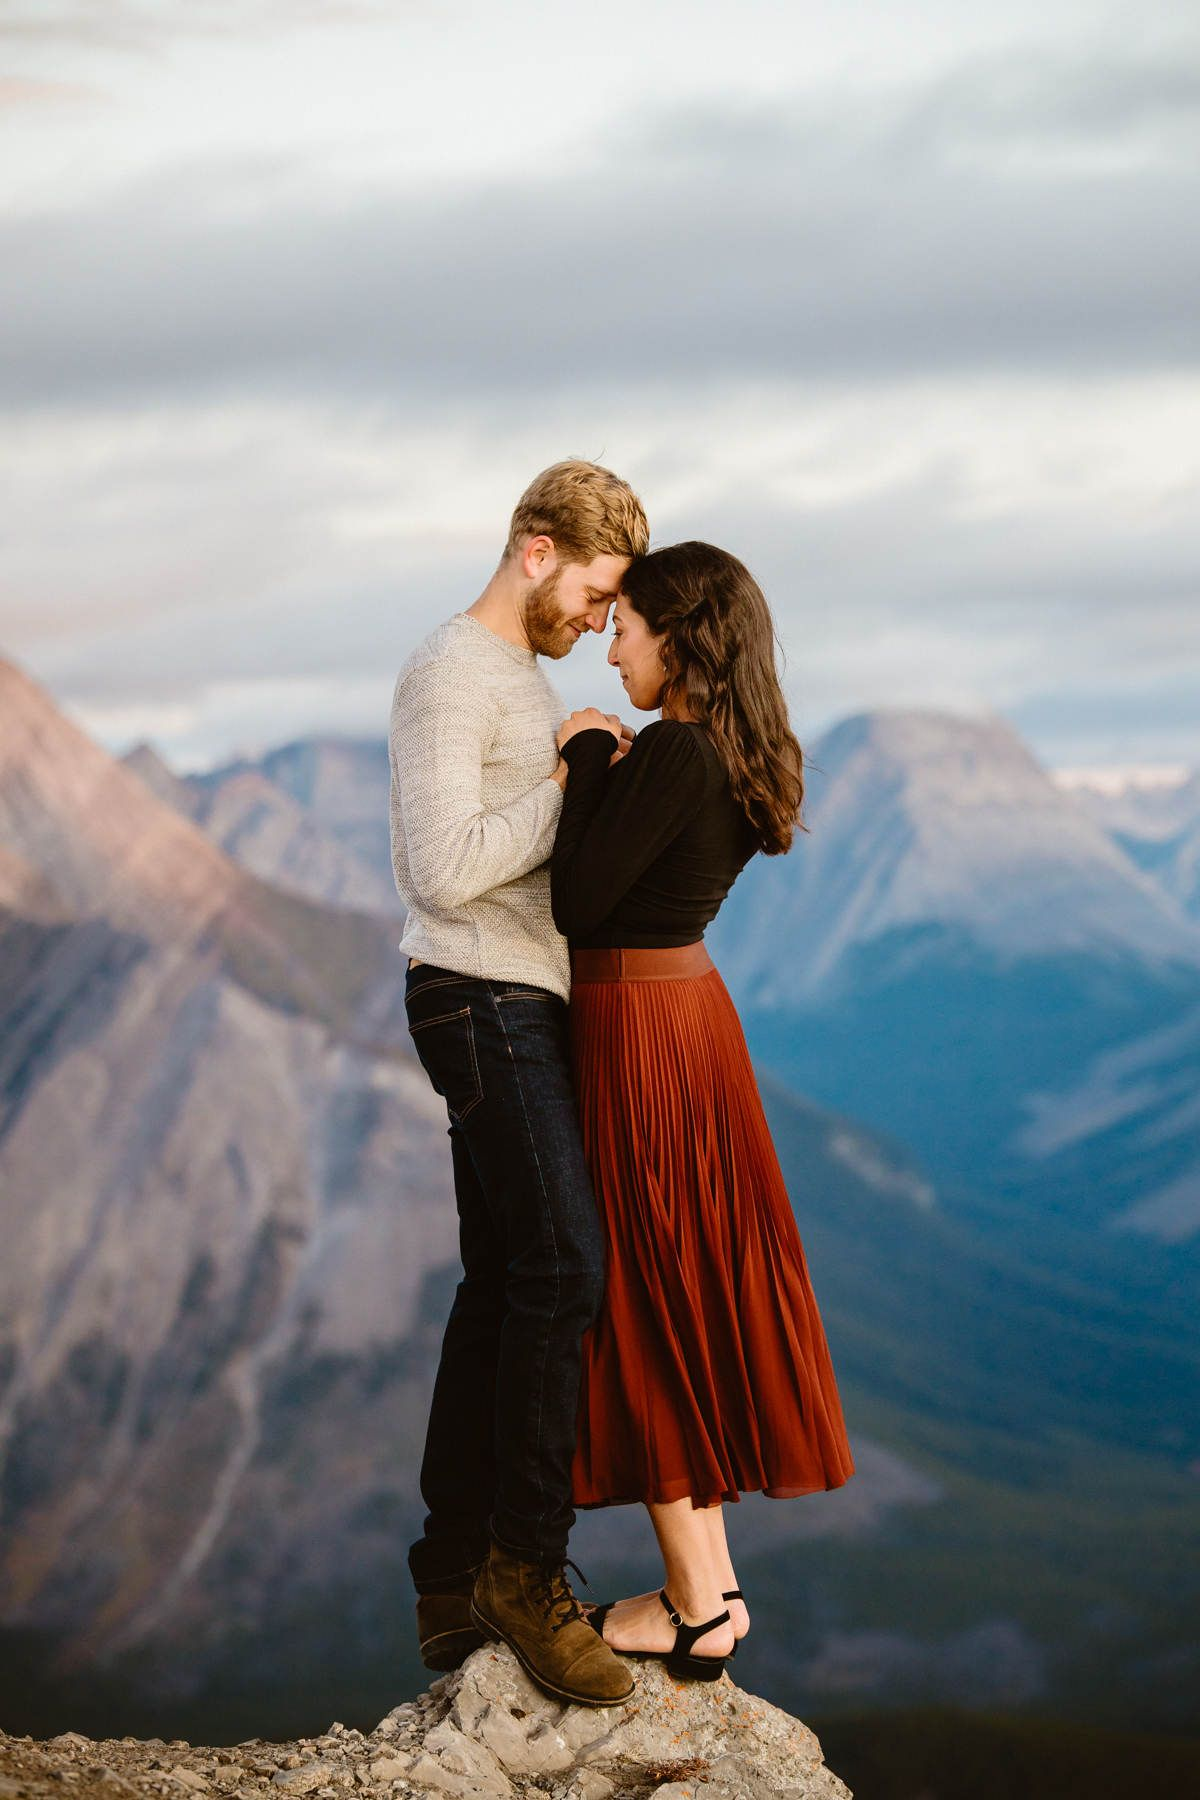 Canmore Hiking Engagement Photos in Kananaskis Country in